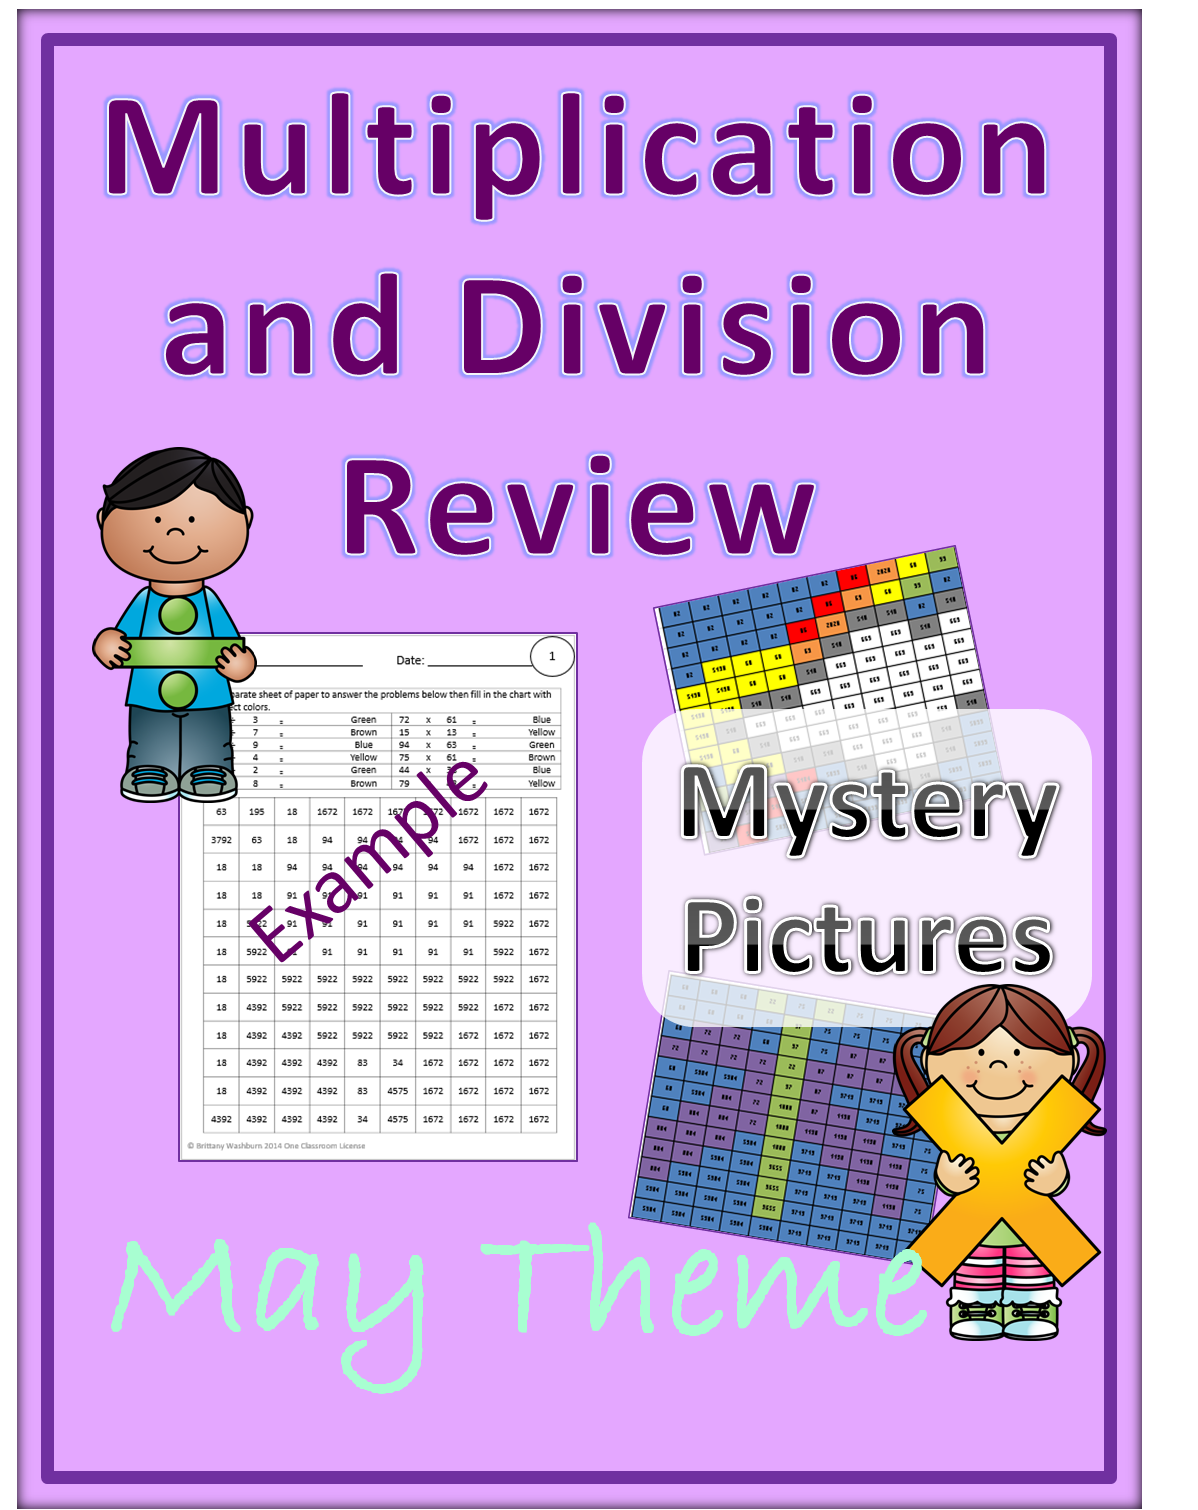 Multiplication And Division Review Mystery Pictures May